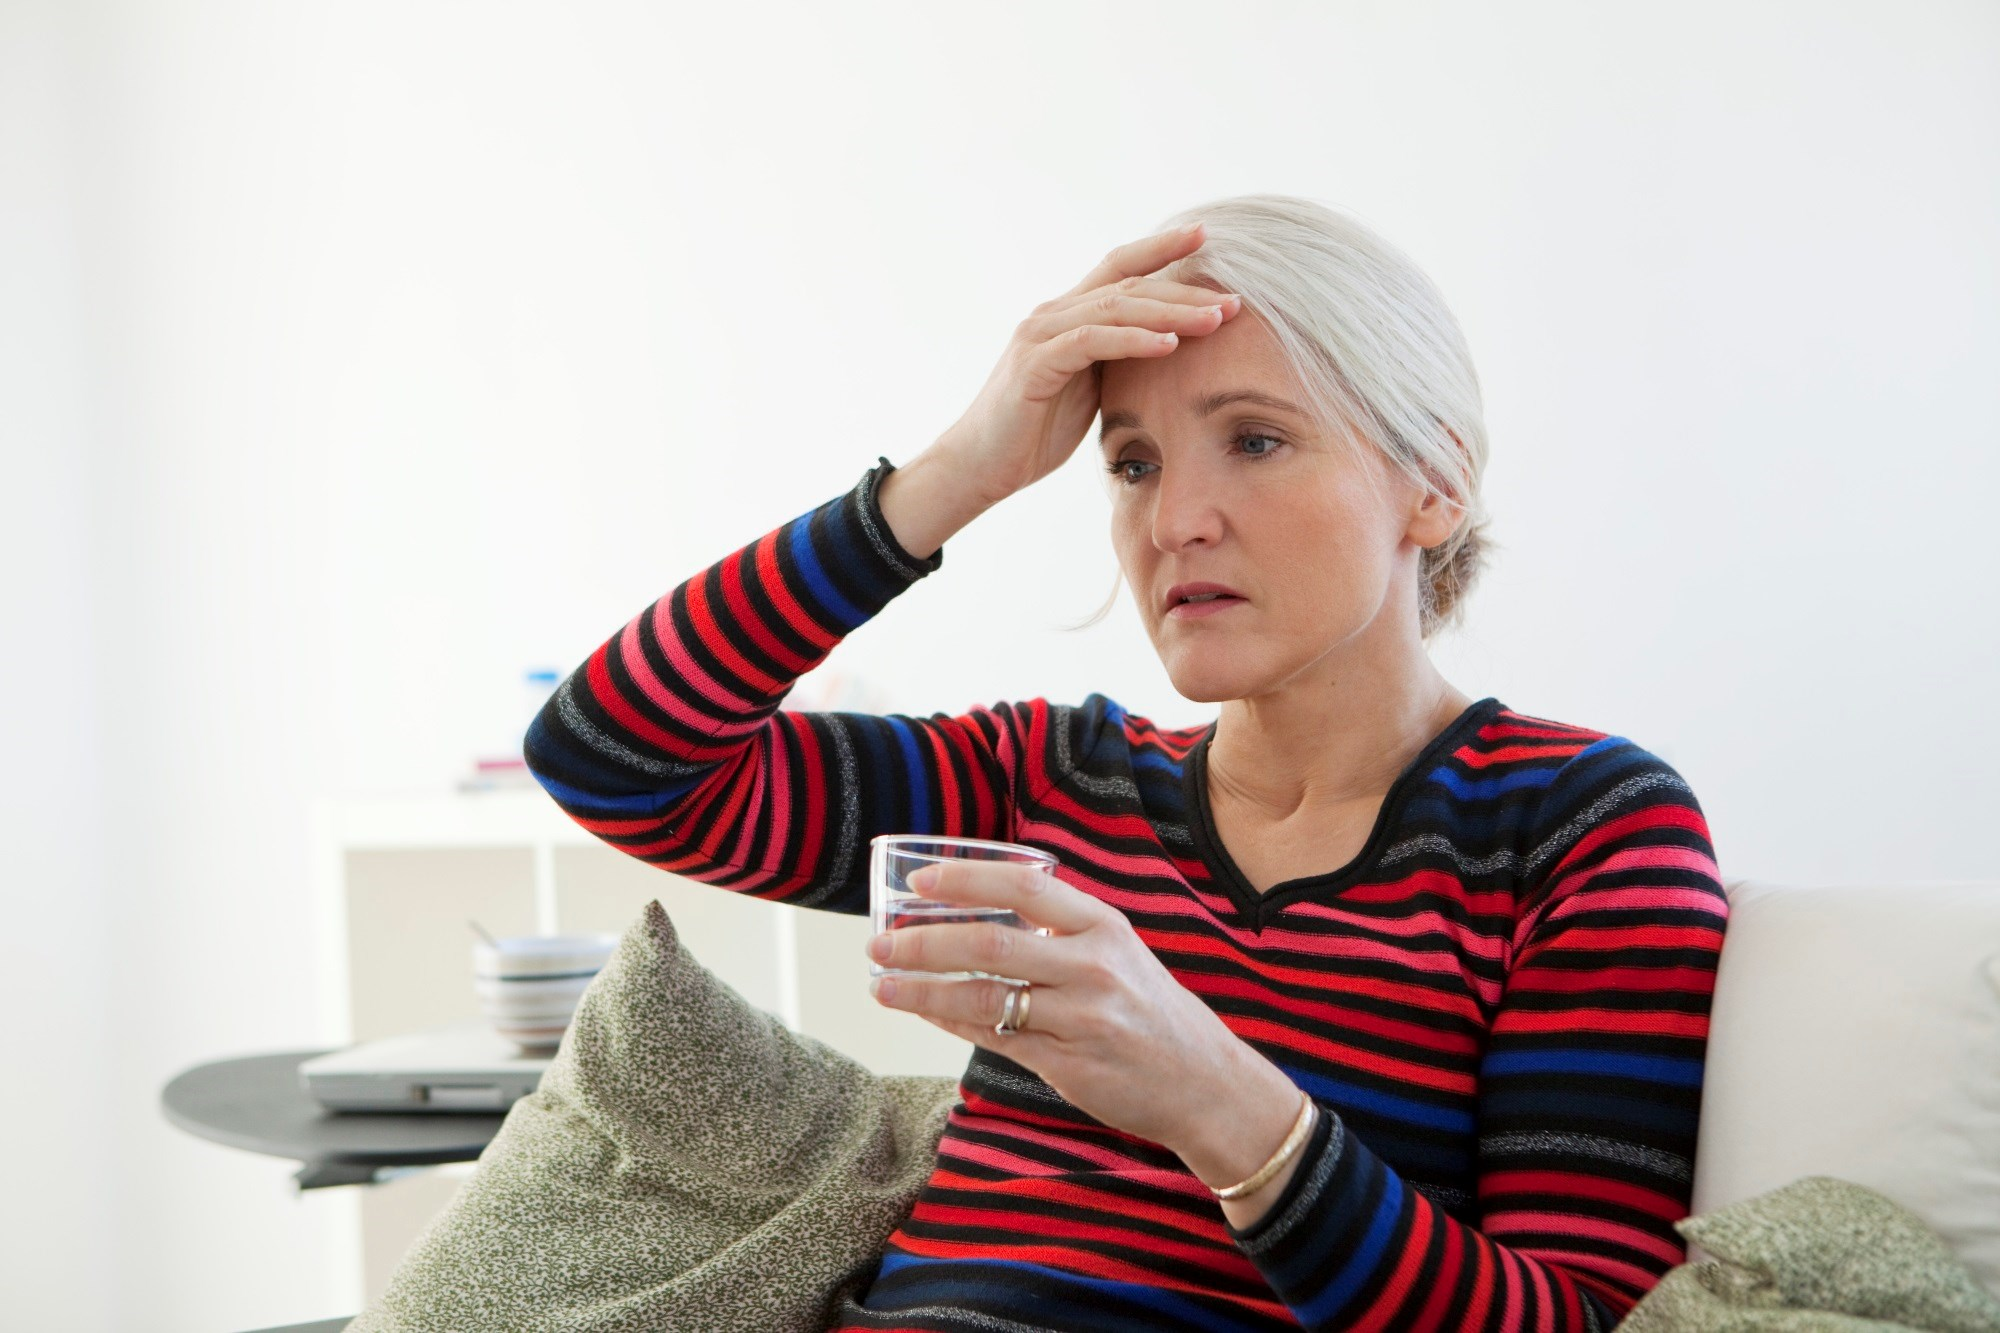 Symptoms more likely in those reporting fair health, history of non-spontaneous menopause